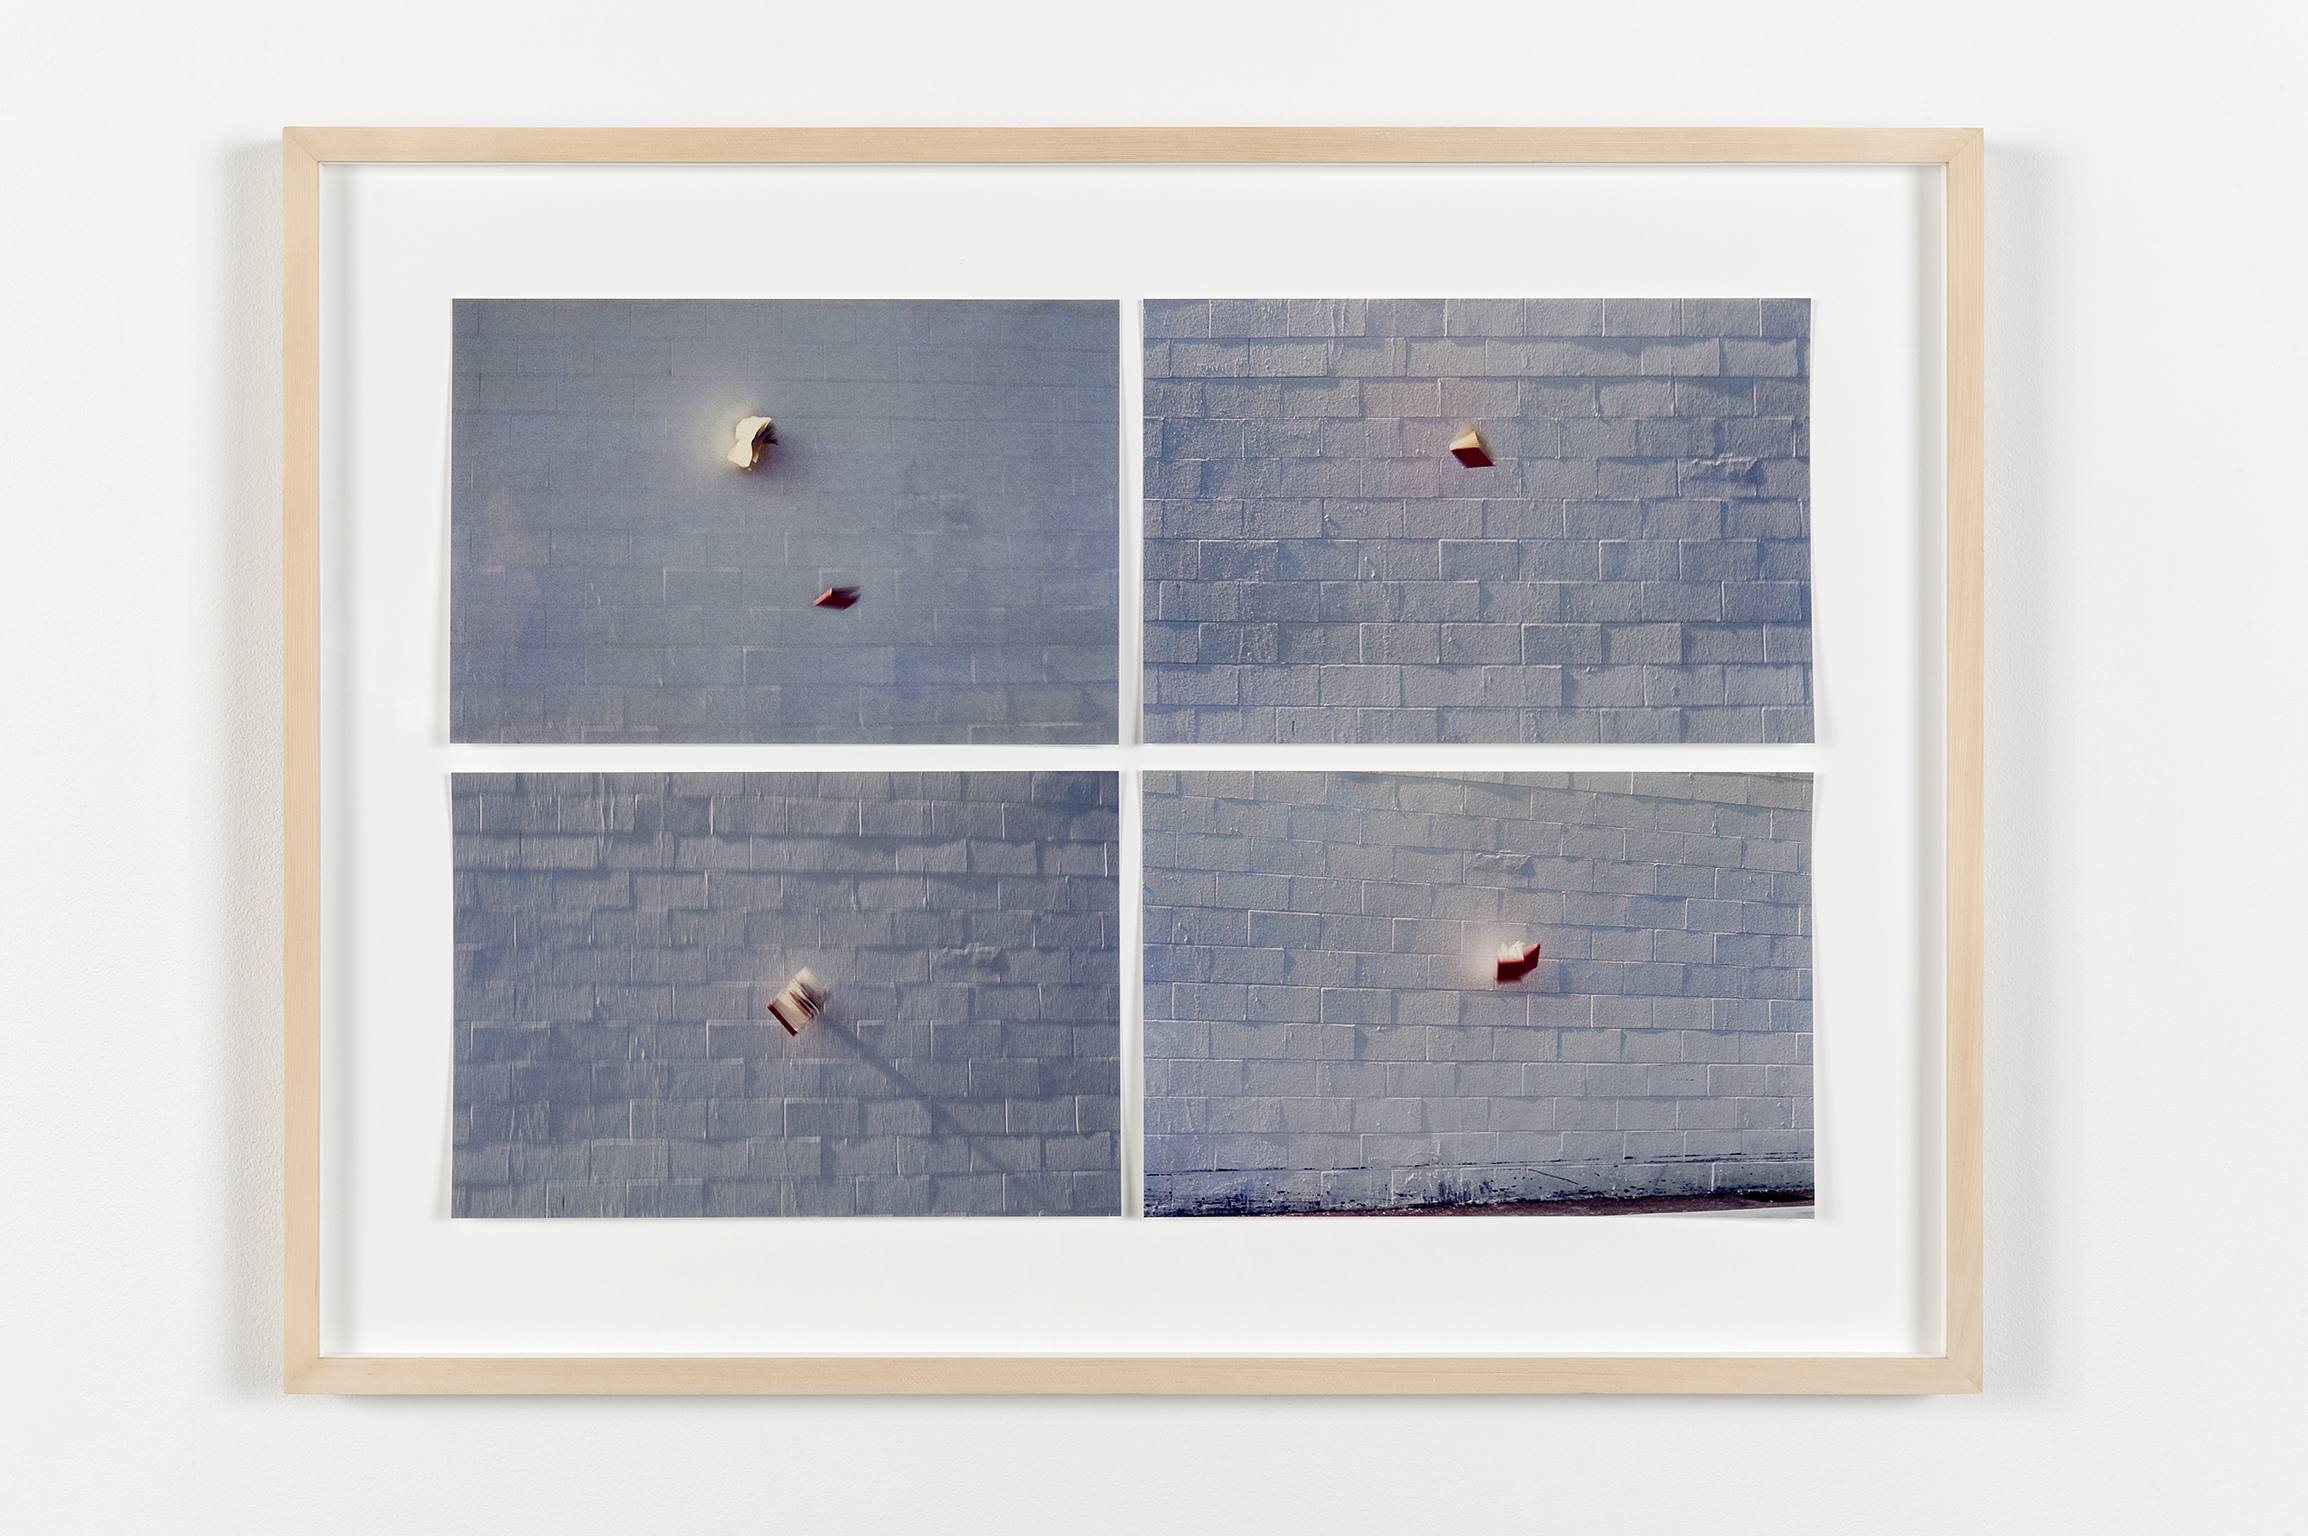 Robert Kleyn, Words are All Over, 1974–2011, colour photographs, 23 x 30 in. (57 x 77 cm) by